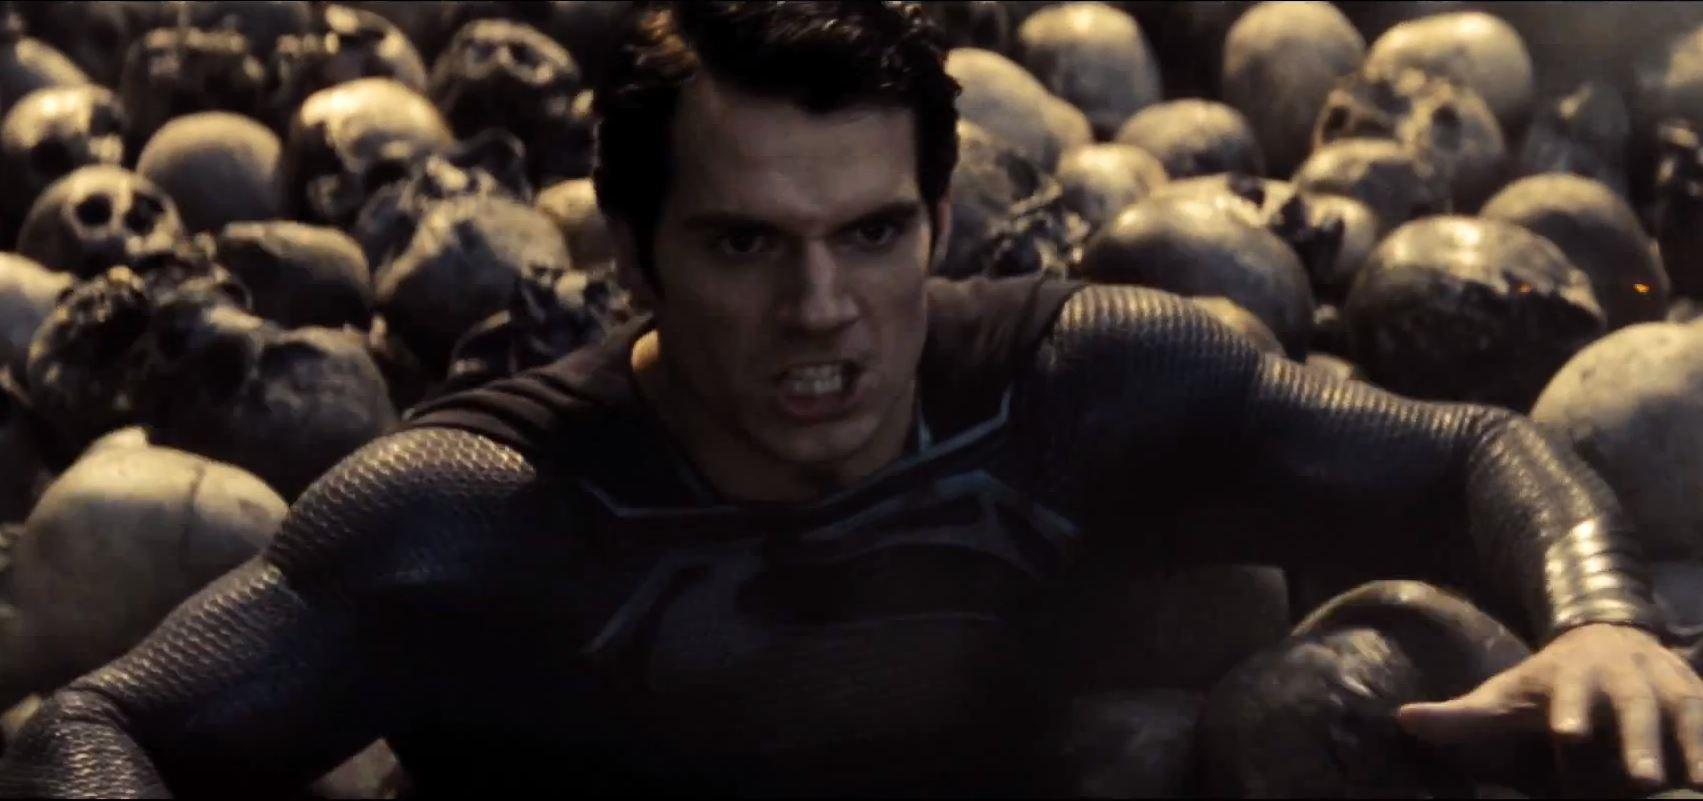 Here's Your First Peek At Henry Cavill's New Superman Suit